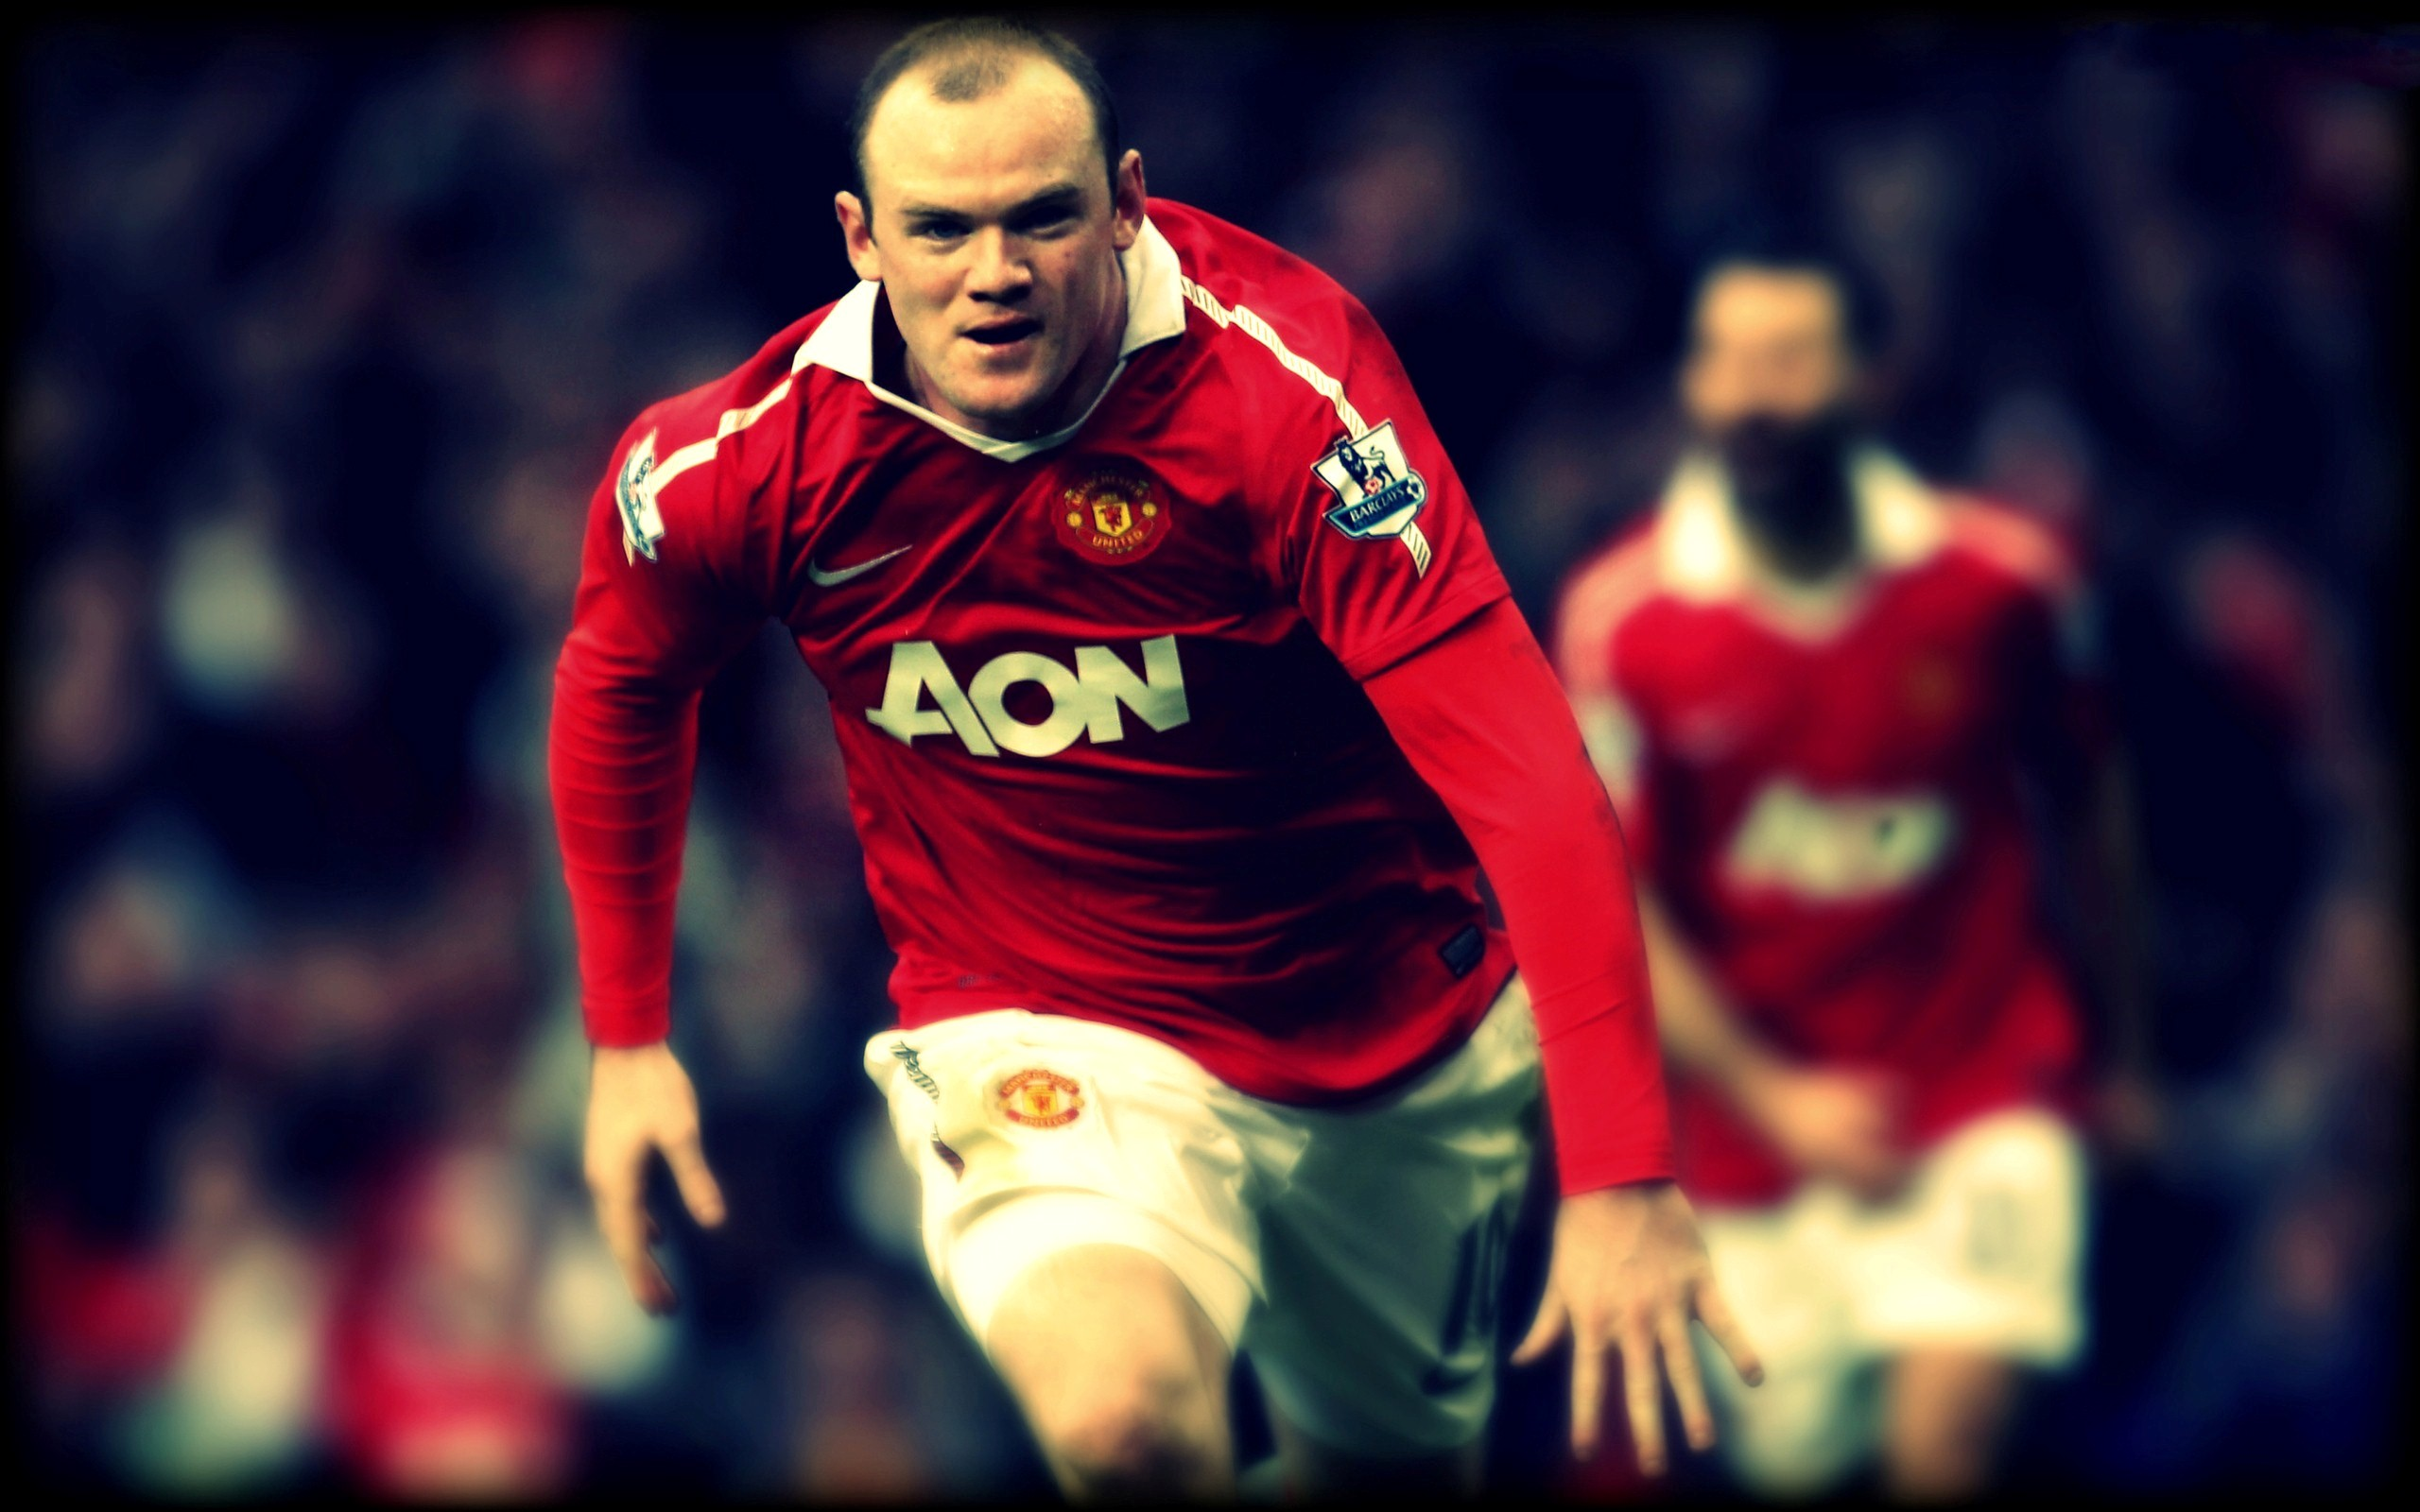 Wayne Rooney Football Player HD Wallpapers 2560x1600